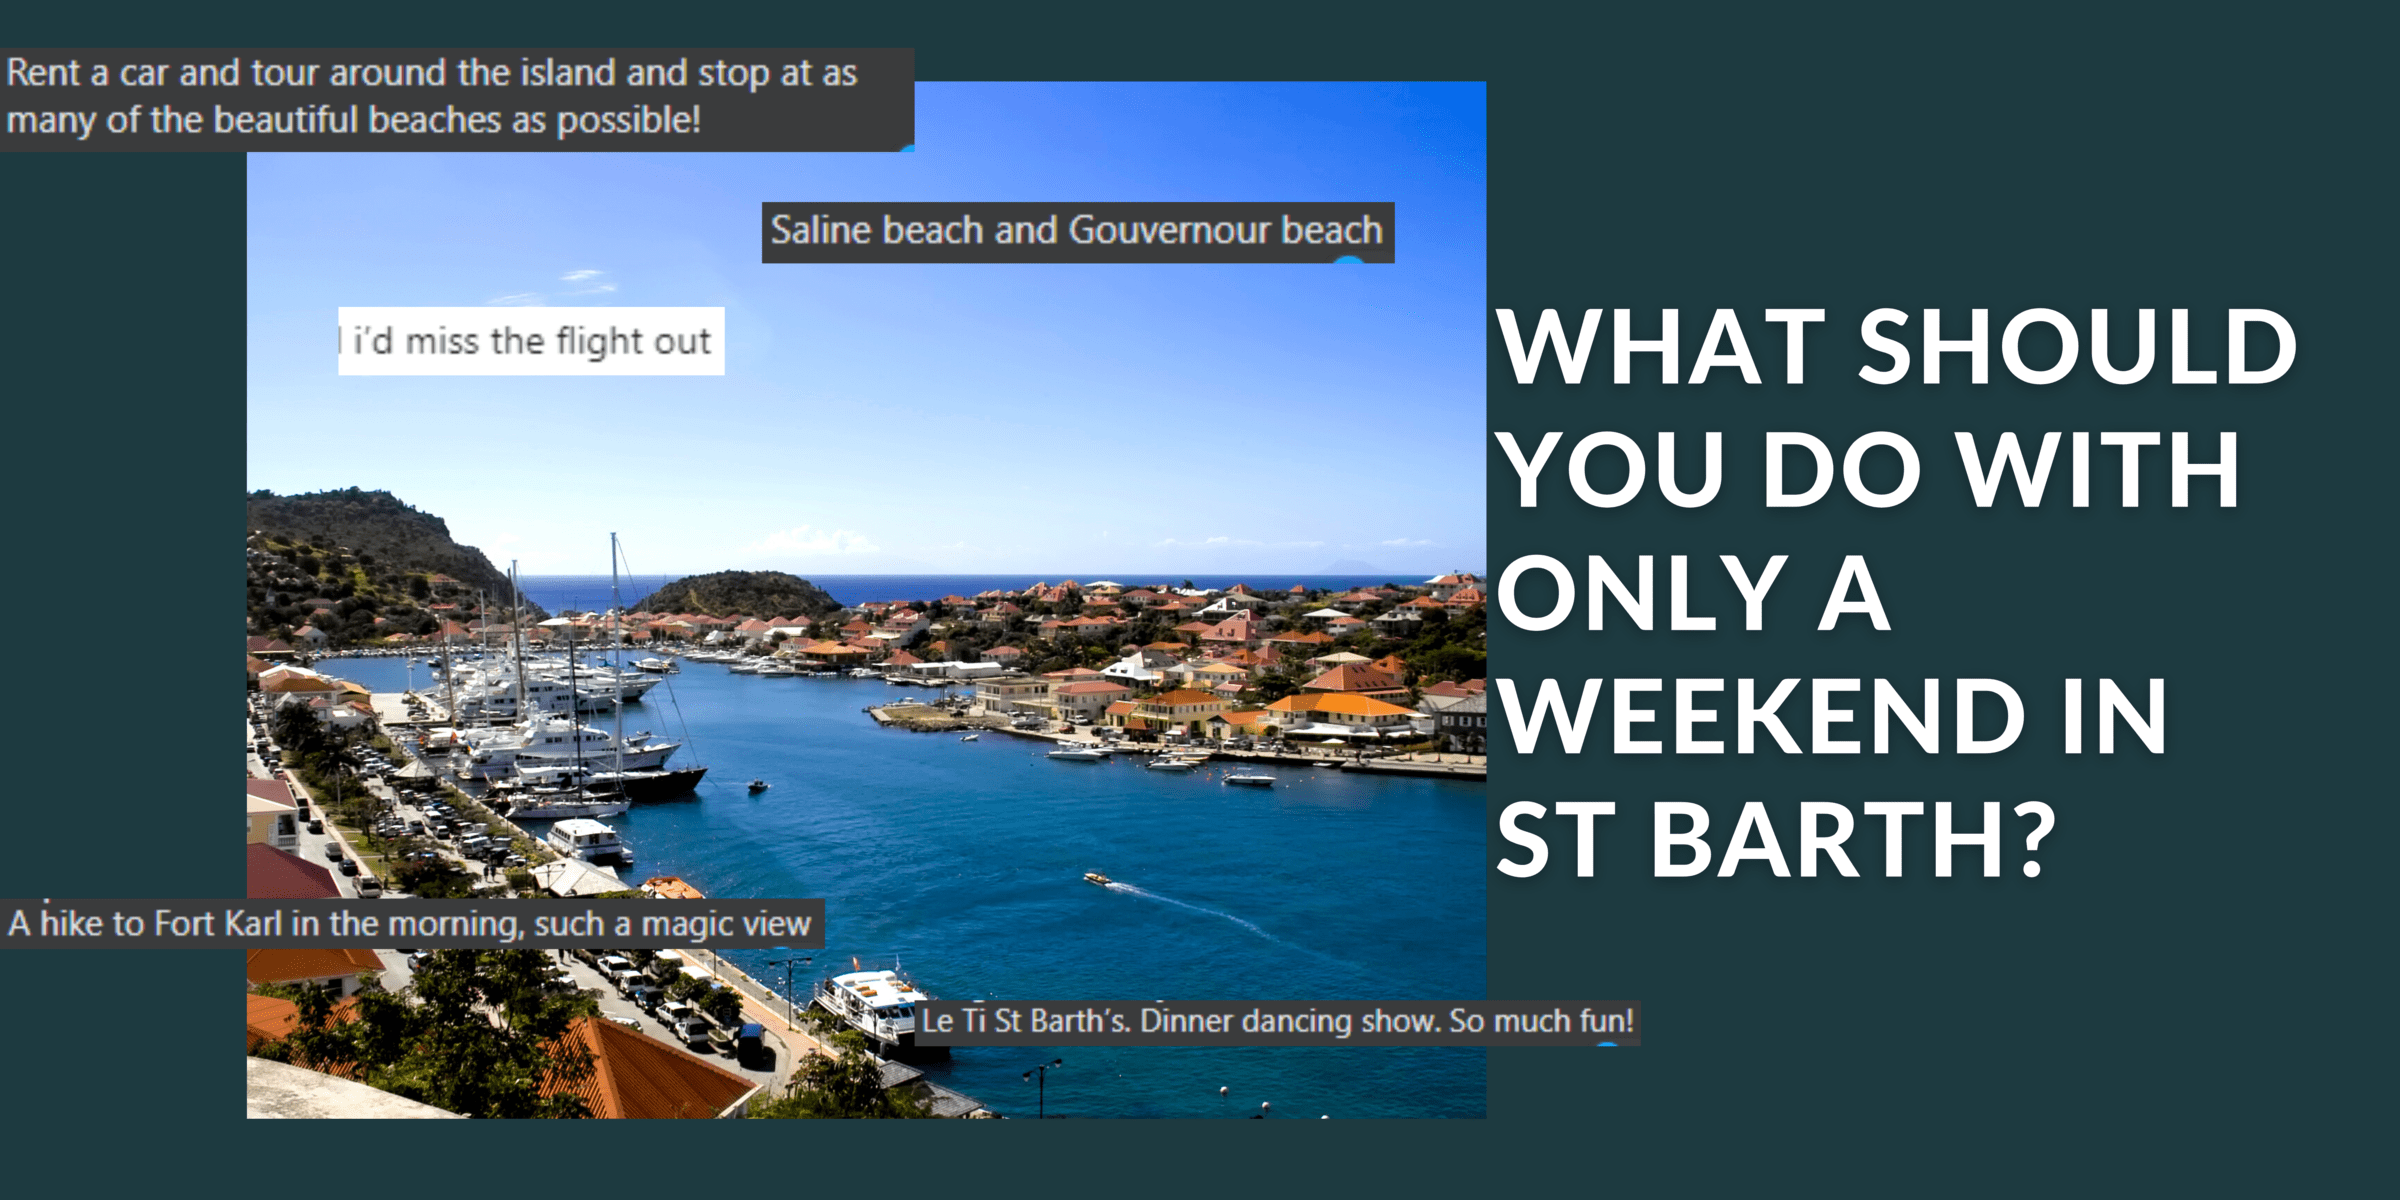 What to do with only a weekend in St Barts